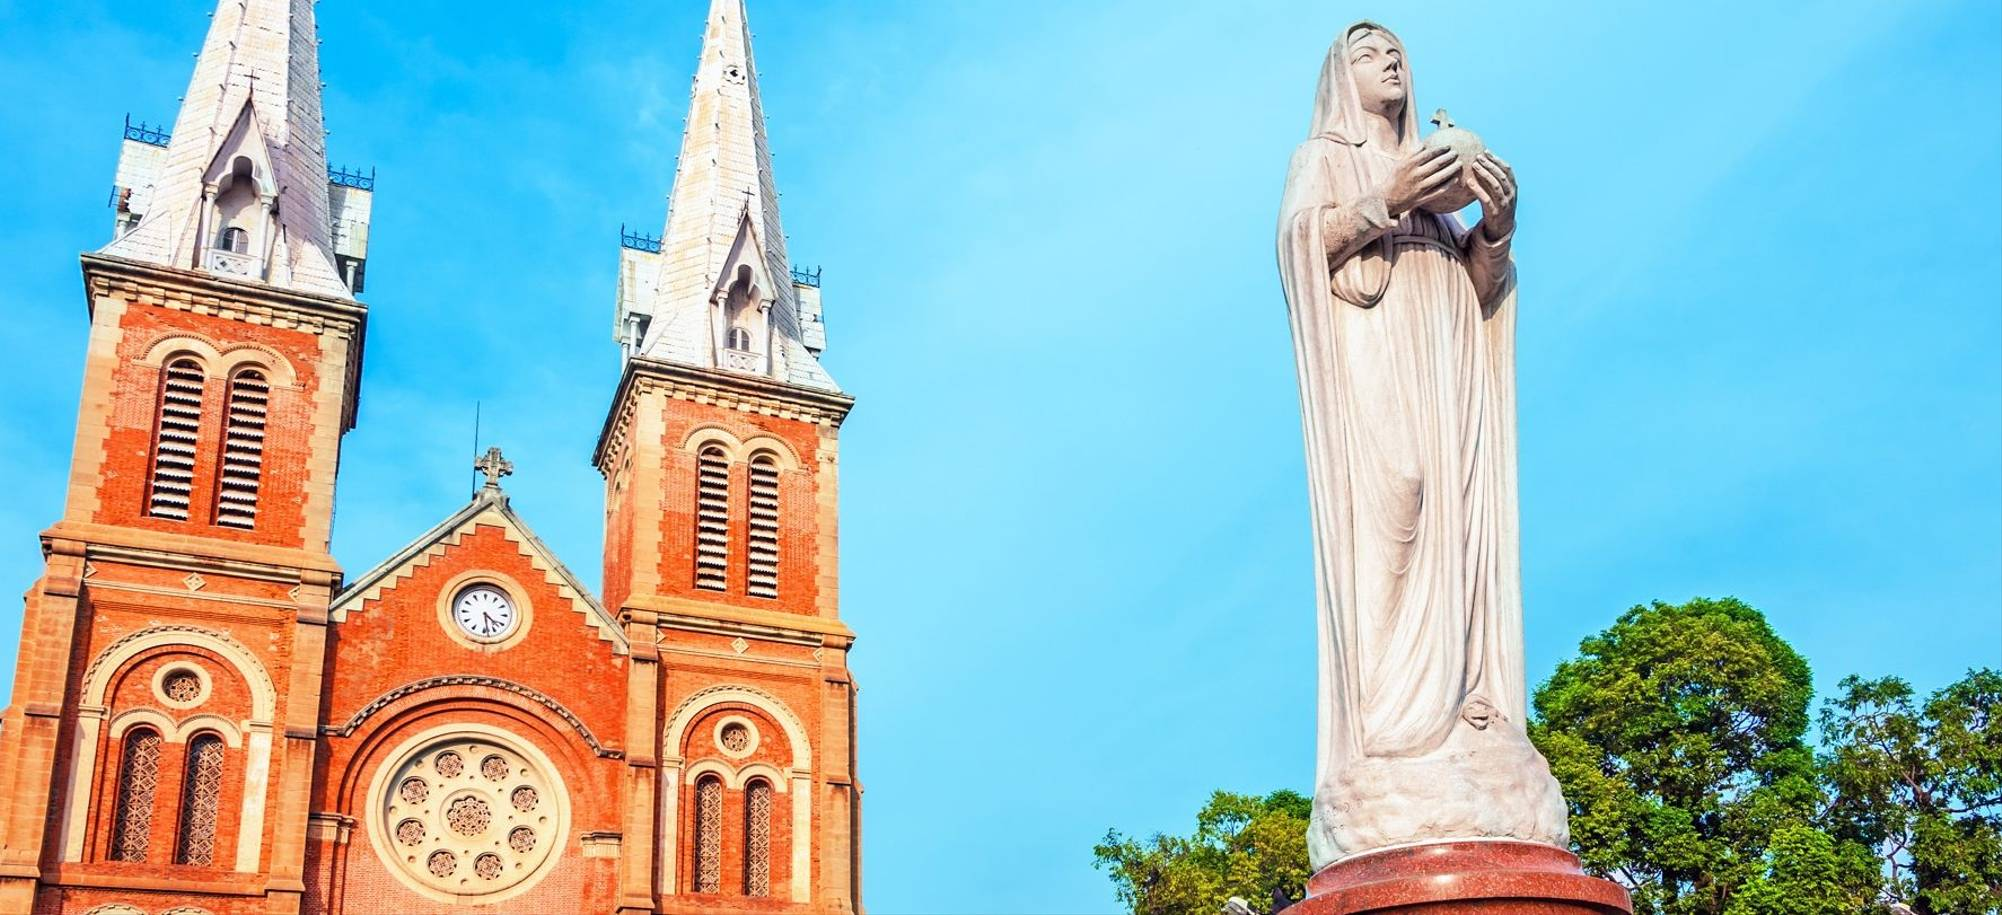 Ho Chi Minh City   Notra Dame Cathedral   Itinerary Desktop